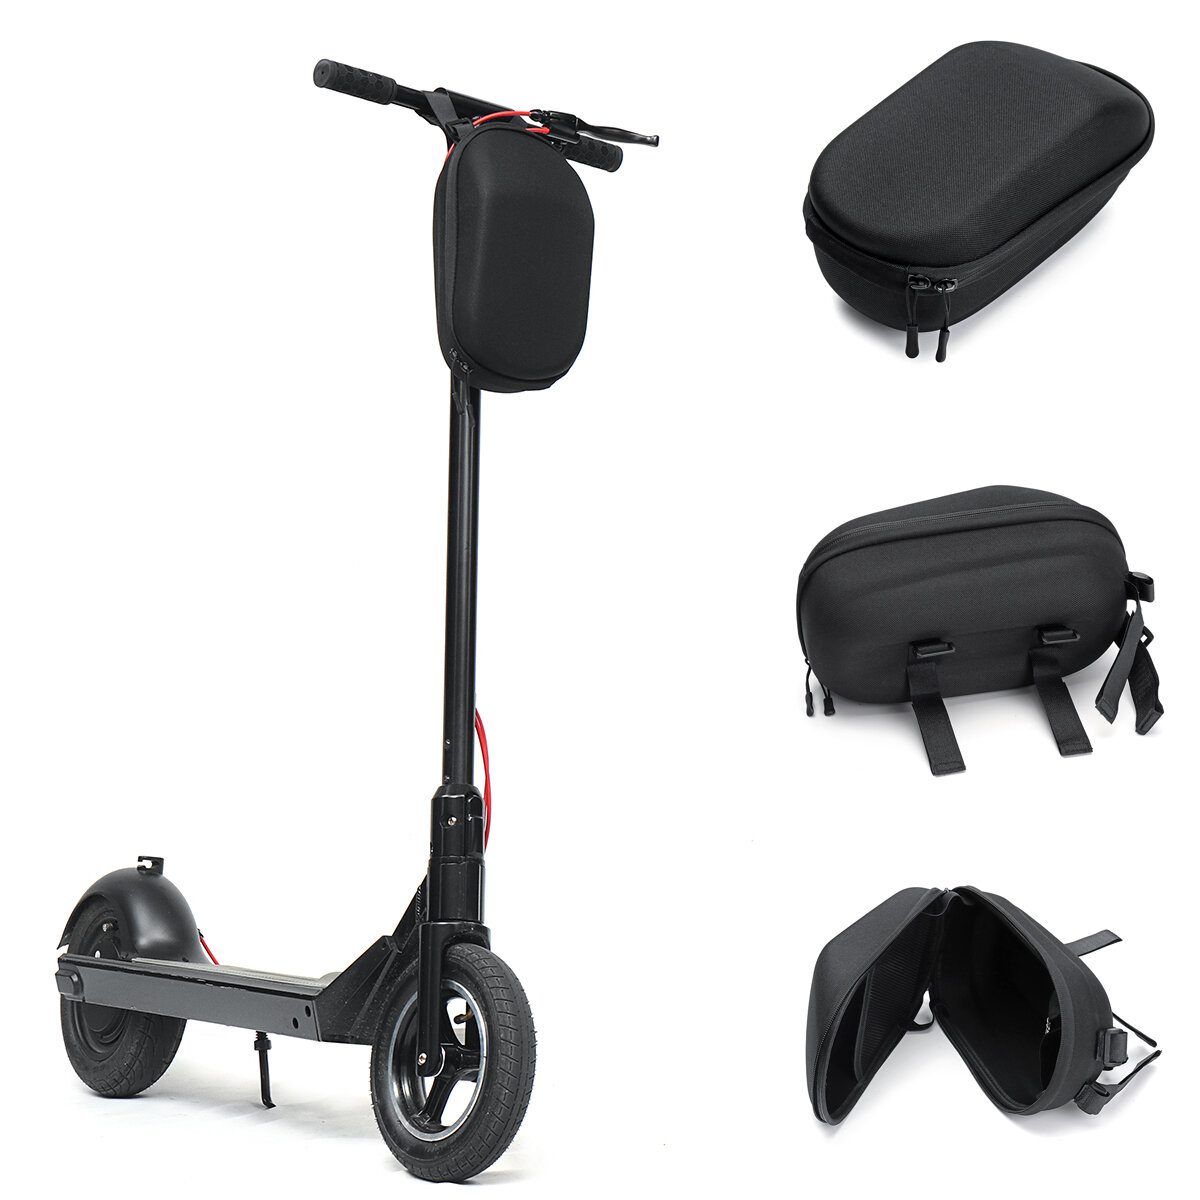 Universal Waterproof EVA Storage Bag Front Carrying Bag For Xiaomi M365 Electric Scooter